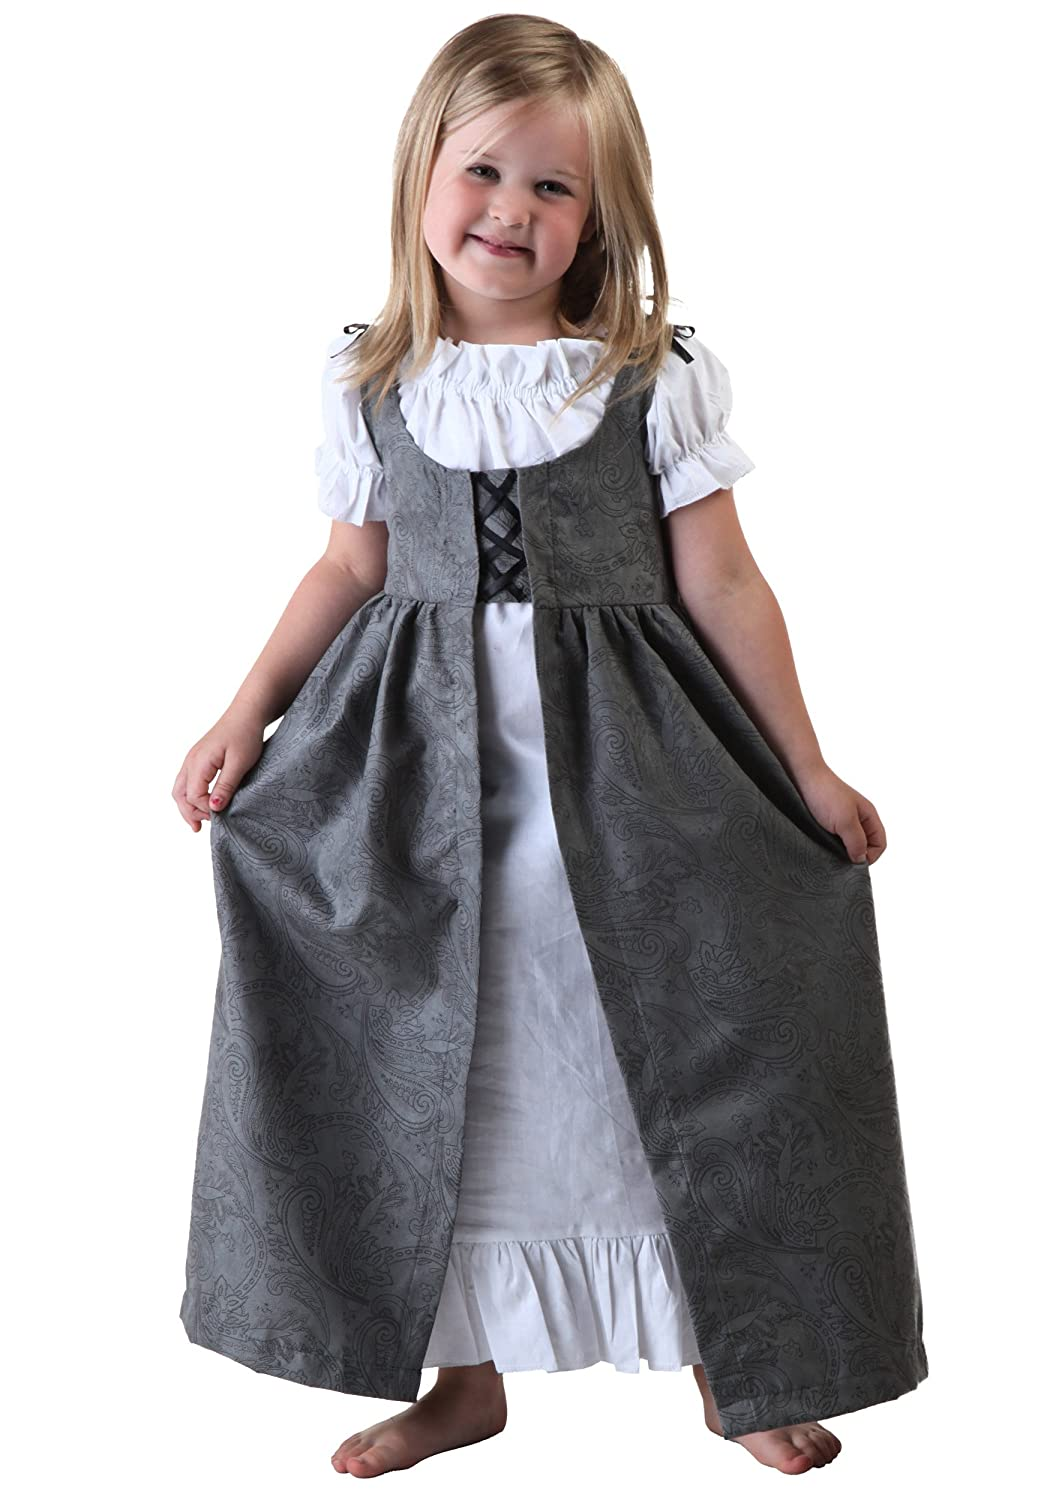 Amazon.com Little Girlsu0027 Toddler Renaissance Faire Costume Toddler Clothing  sc 1 st  Amazon.com & Amazon.com: Little Girlsu0027 Toddler Renaissance Faire Costume Toddler ...